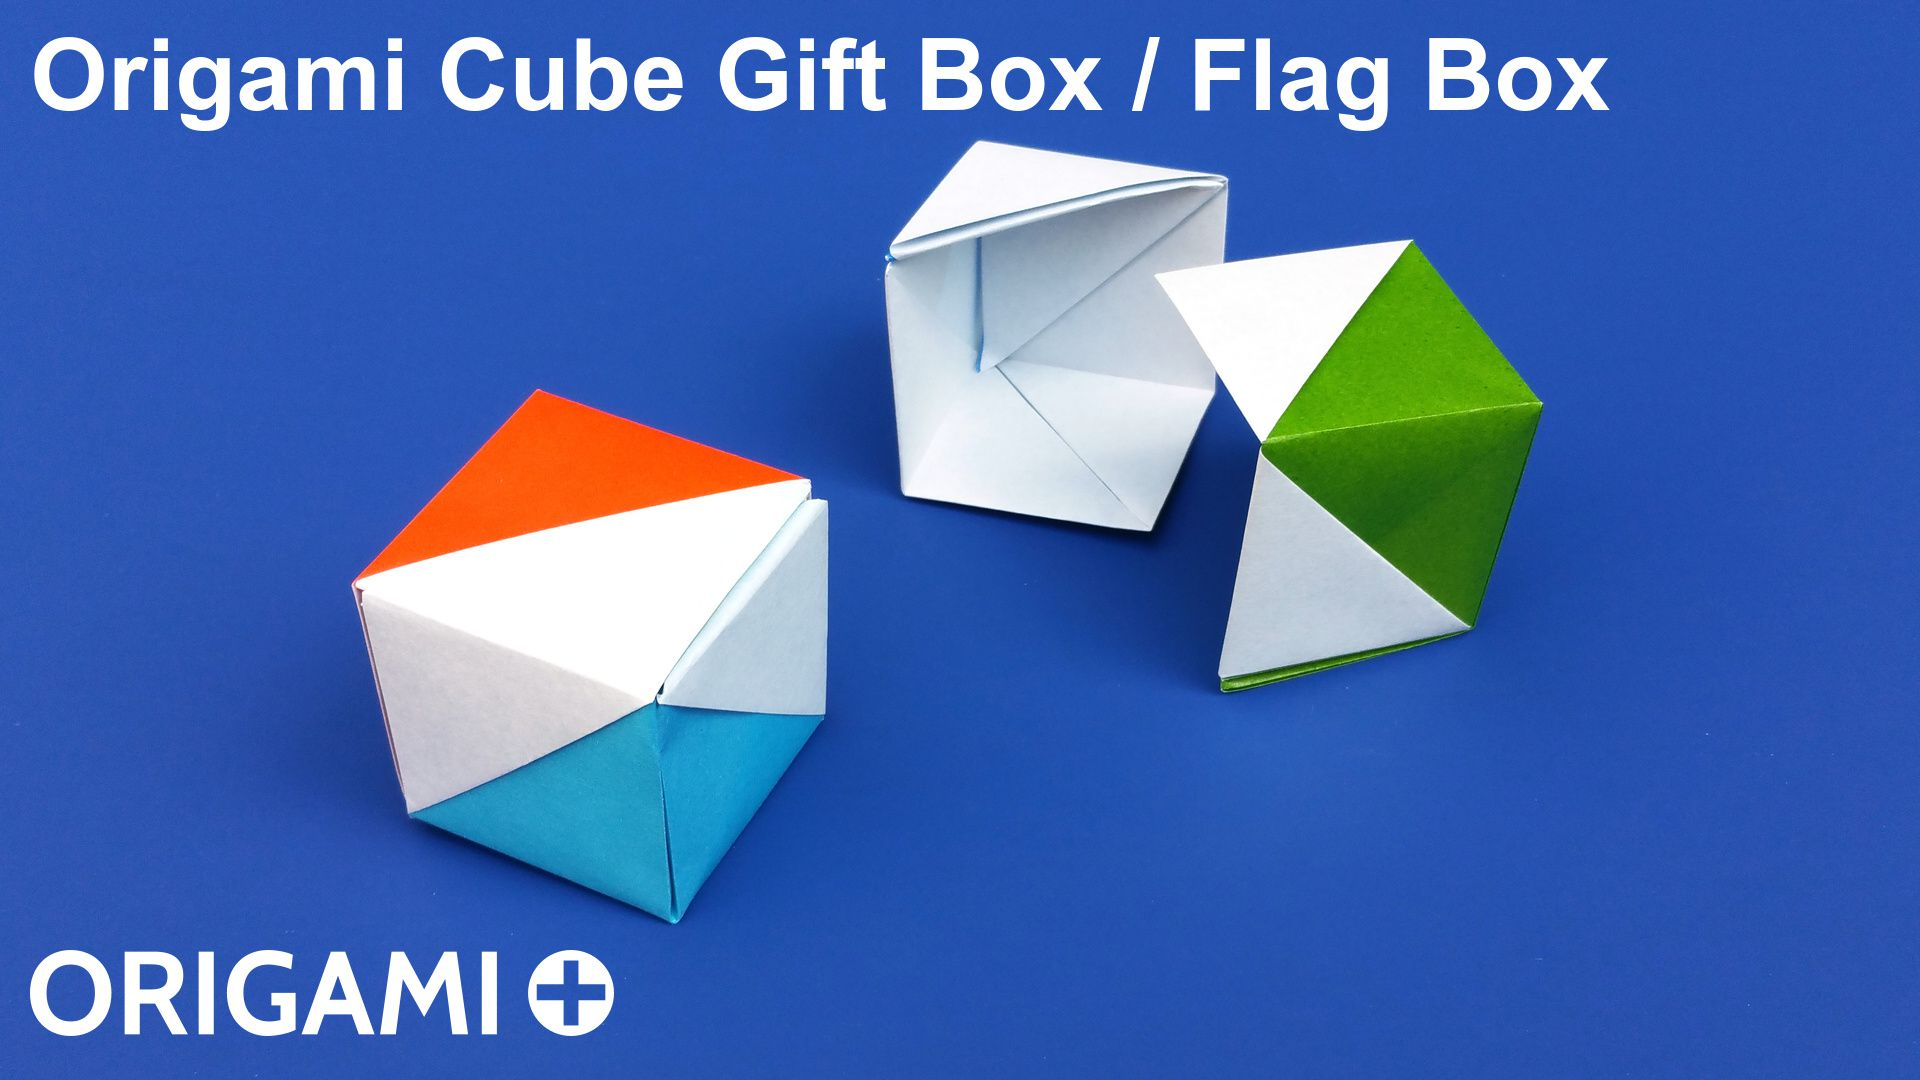 How To Fold Origami Cube Origami Cube Gift Box Flag Box